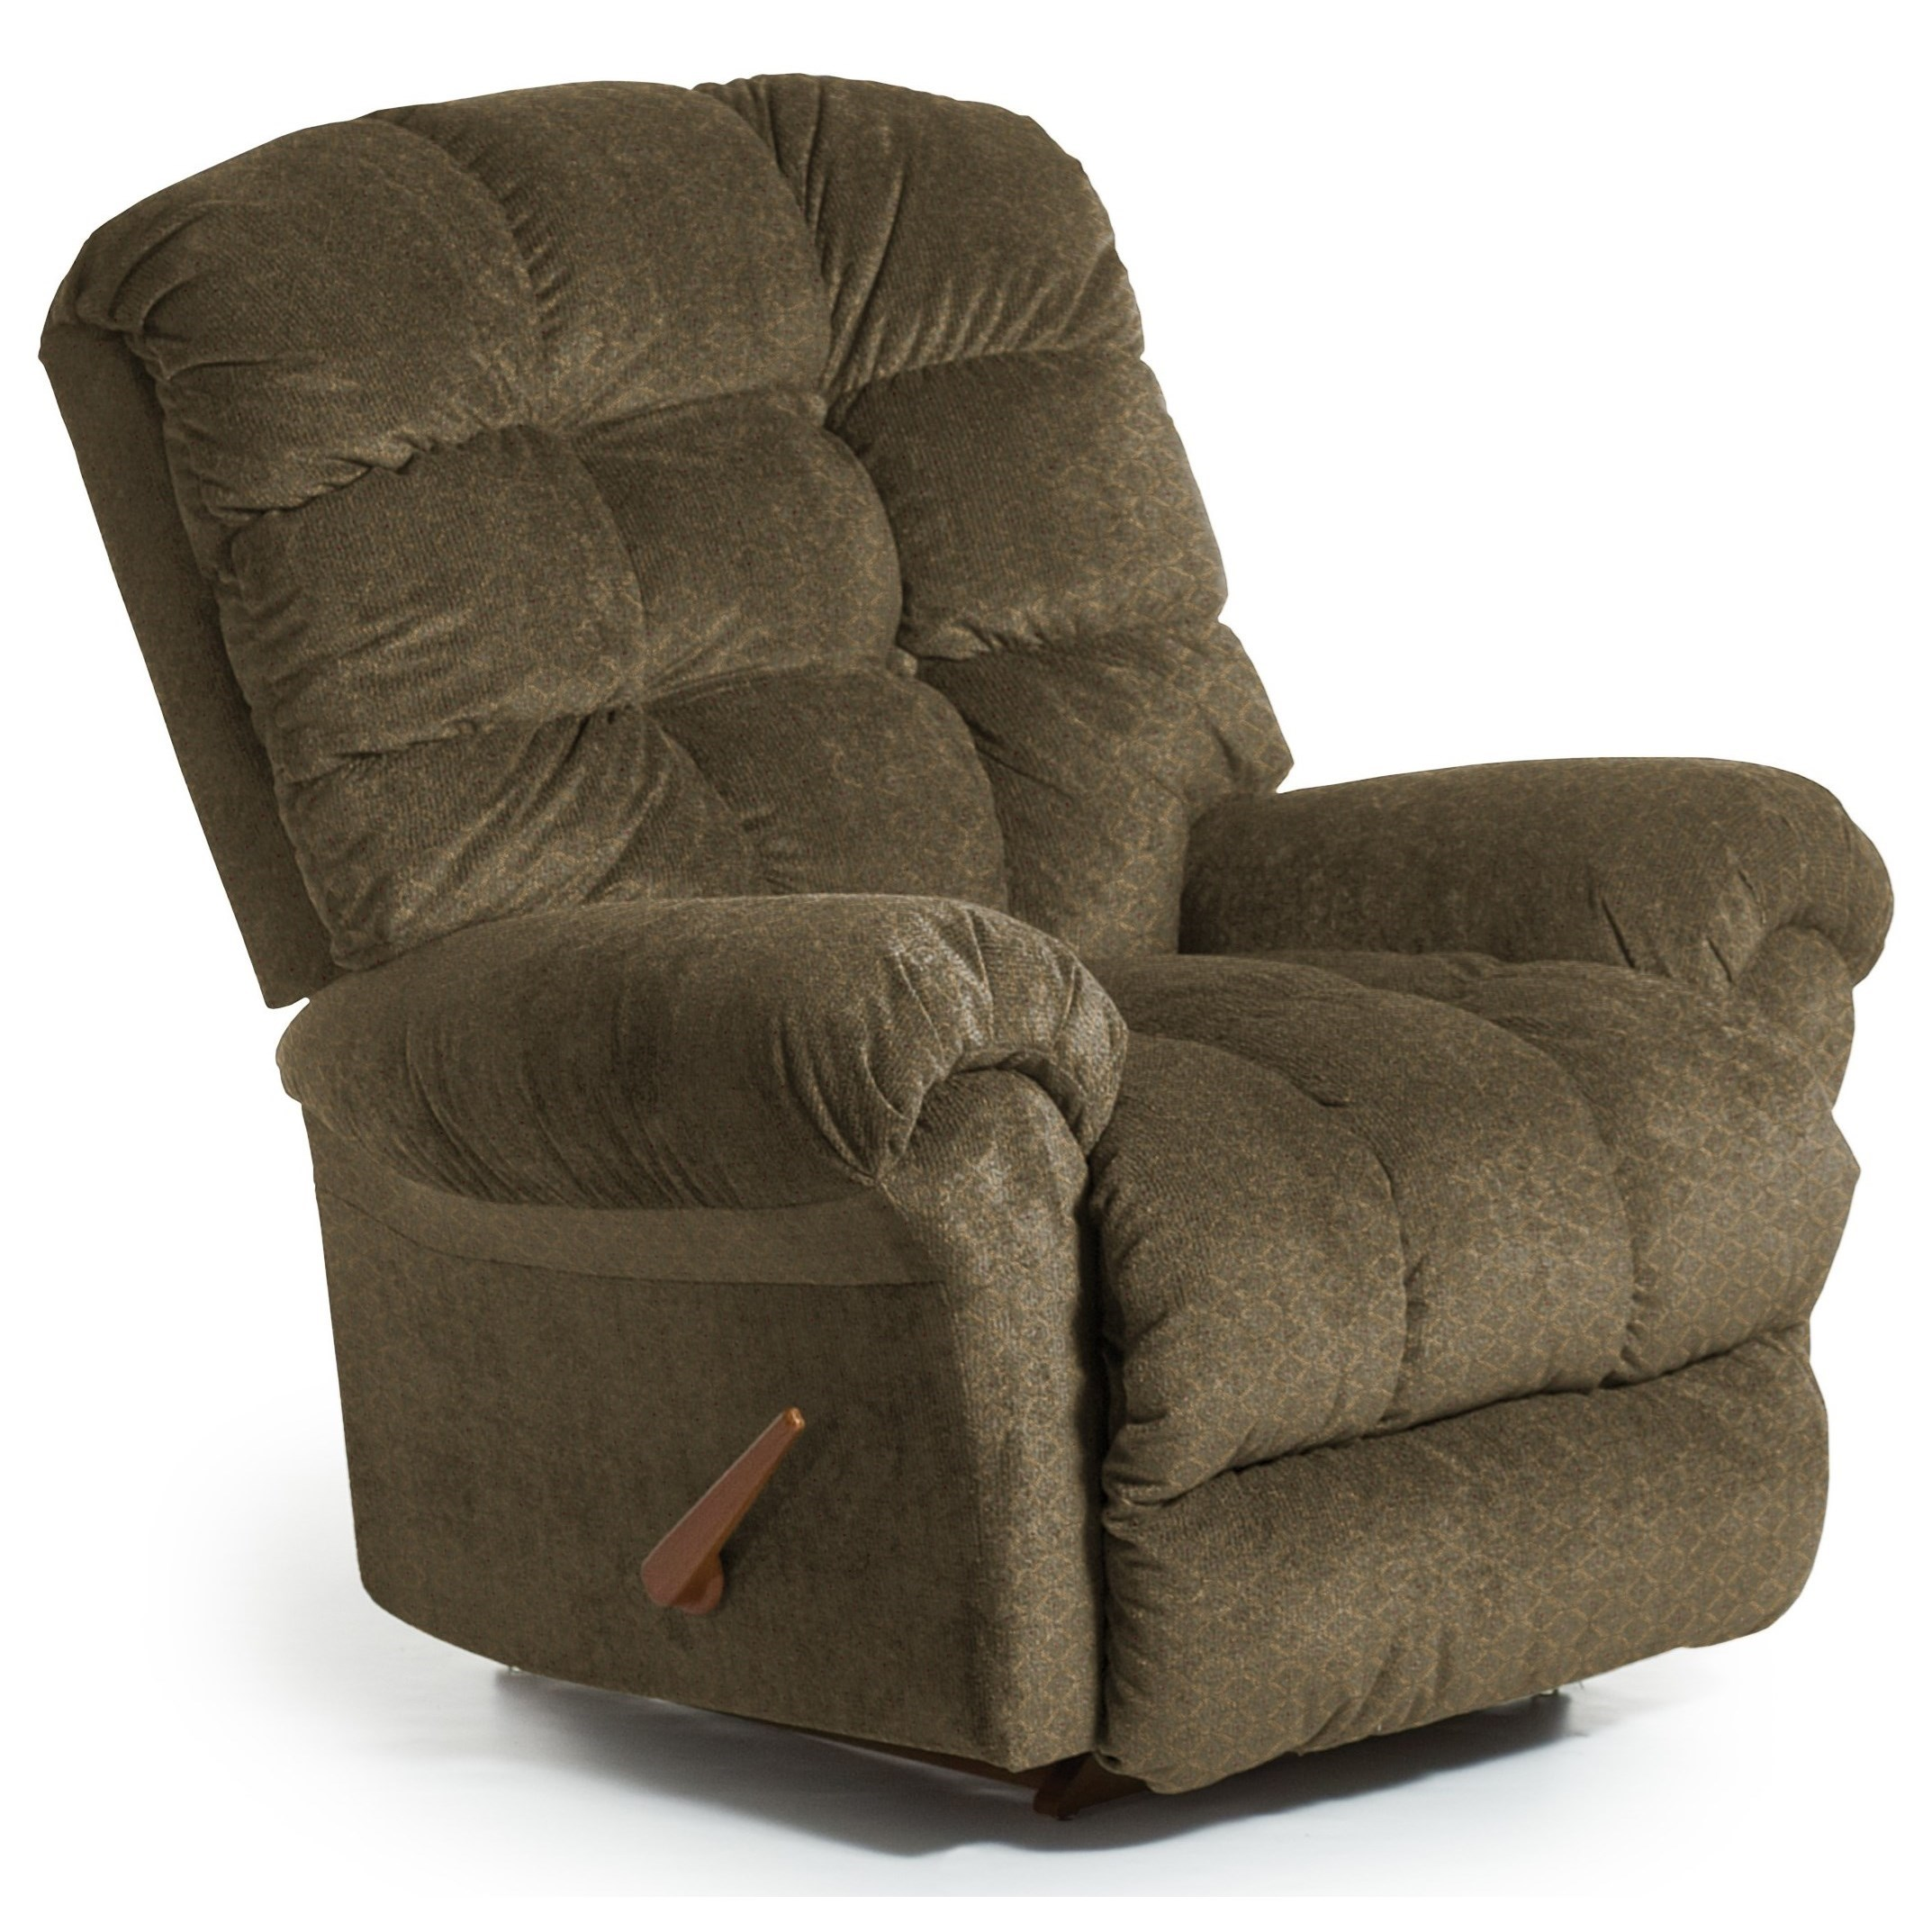 Recliners - BodyRest BodyRest Rocker Recliner by Bravo Furniture at Bennett's Furniture and Mattresses